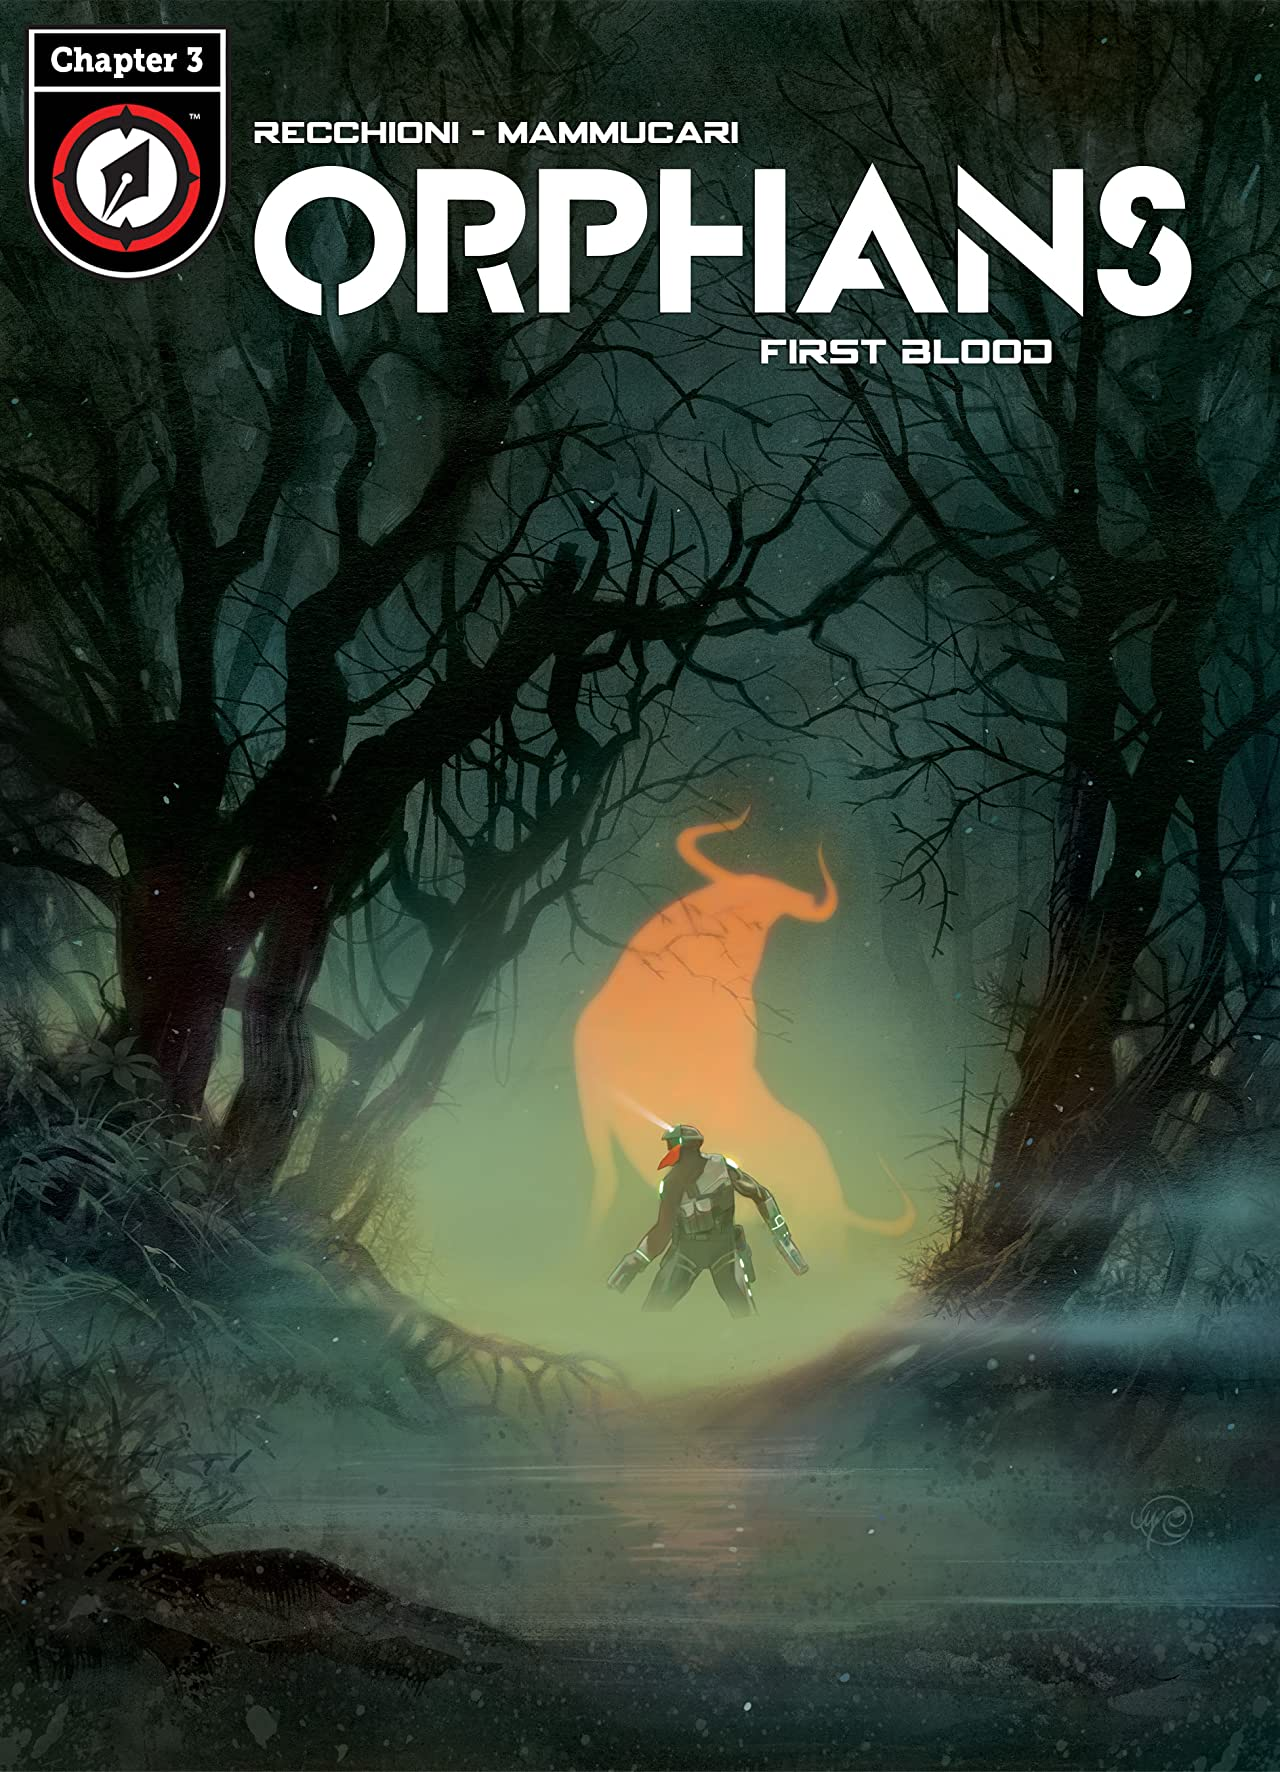 Orphans Vol. 1 #3: First Blood